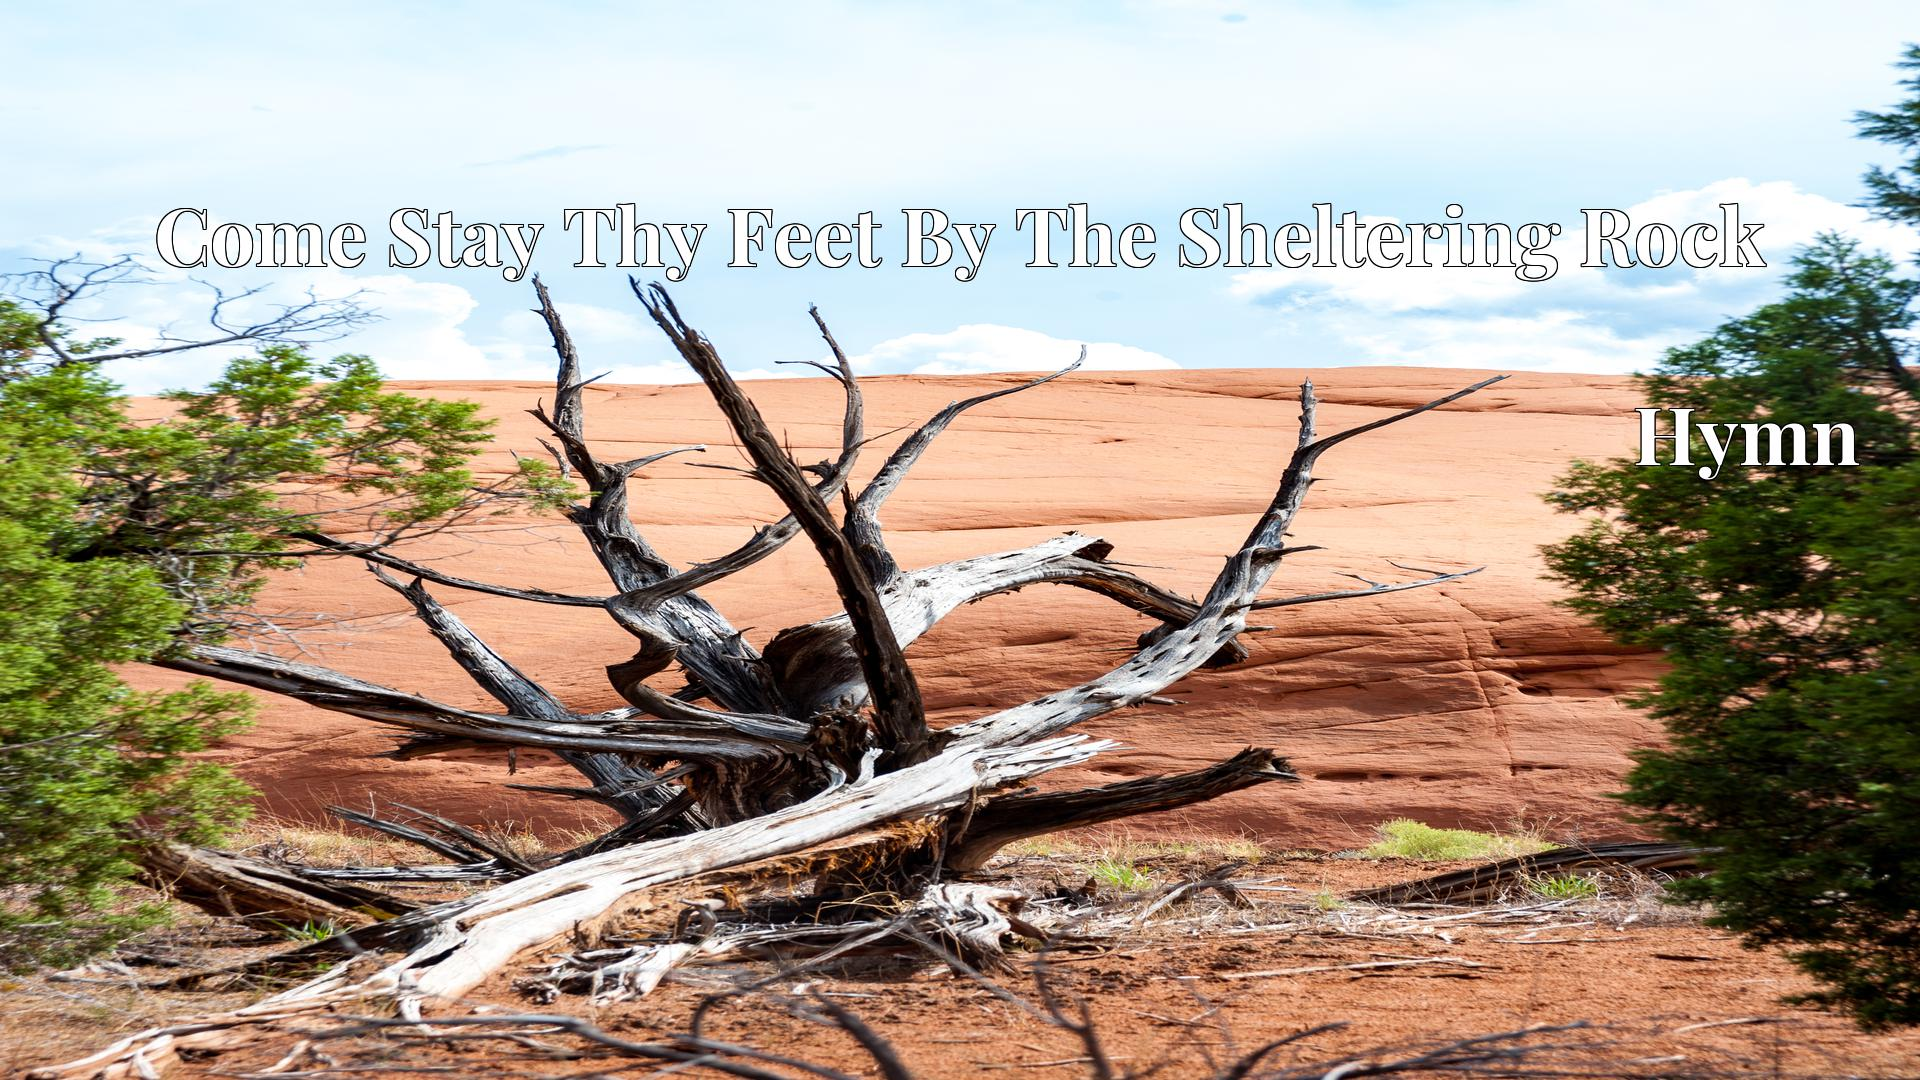 Come Stay Thy Feet By The Sheltering Rock - Hymn